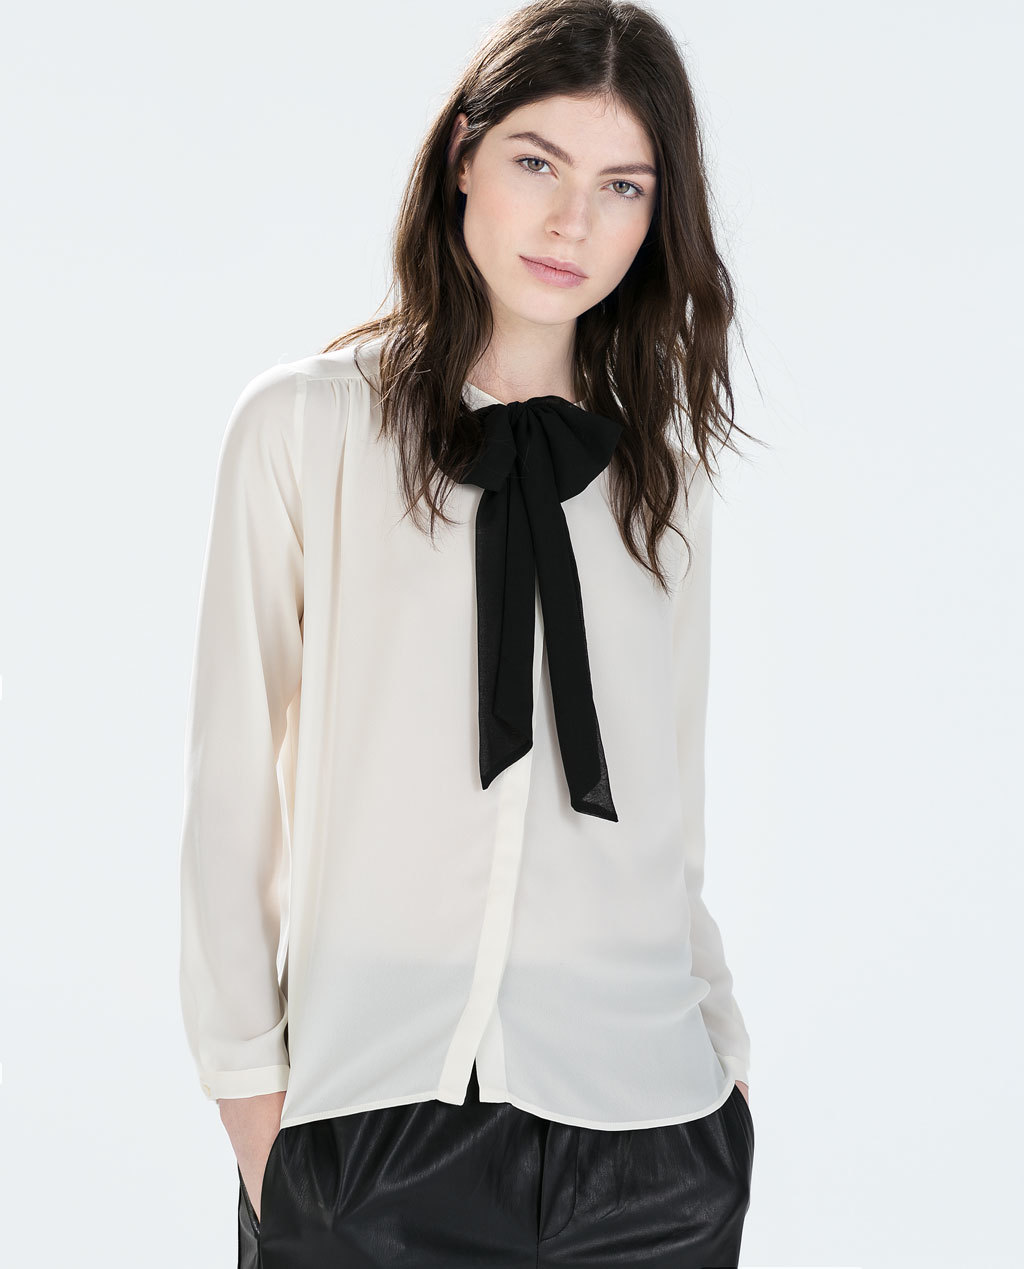 Contrast Collar Blouse With Bow - pattern: plain; neckline: pussy bow; style: blouse; predominant colour: ivory/cream; secondary colour: black; occasions: casual, work, creative work; length: standard; fibres: polyester/polyamide - 100%; fit: straight cut; sleeve length: long sleeve; sleeve style: standard; texture group: sheer fabrics/chiffon/organza etc.; season: a/w 2014